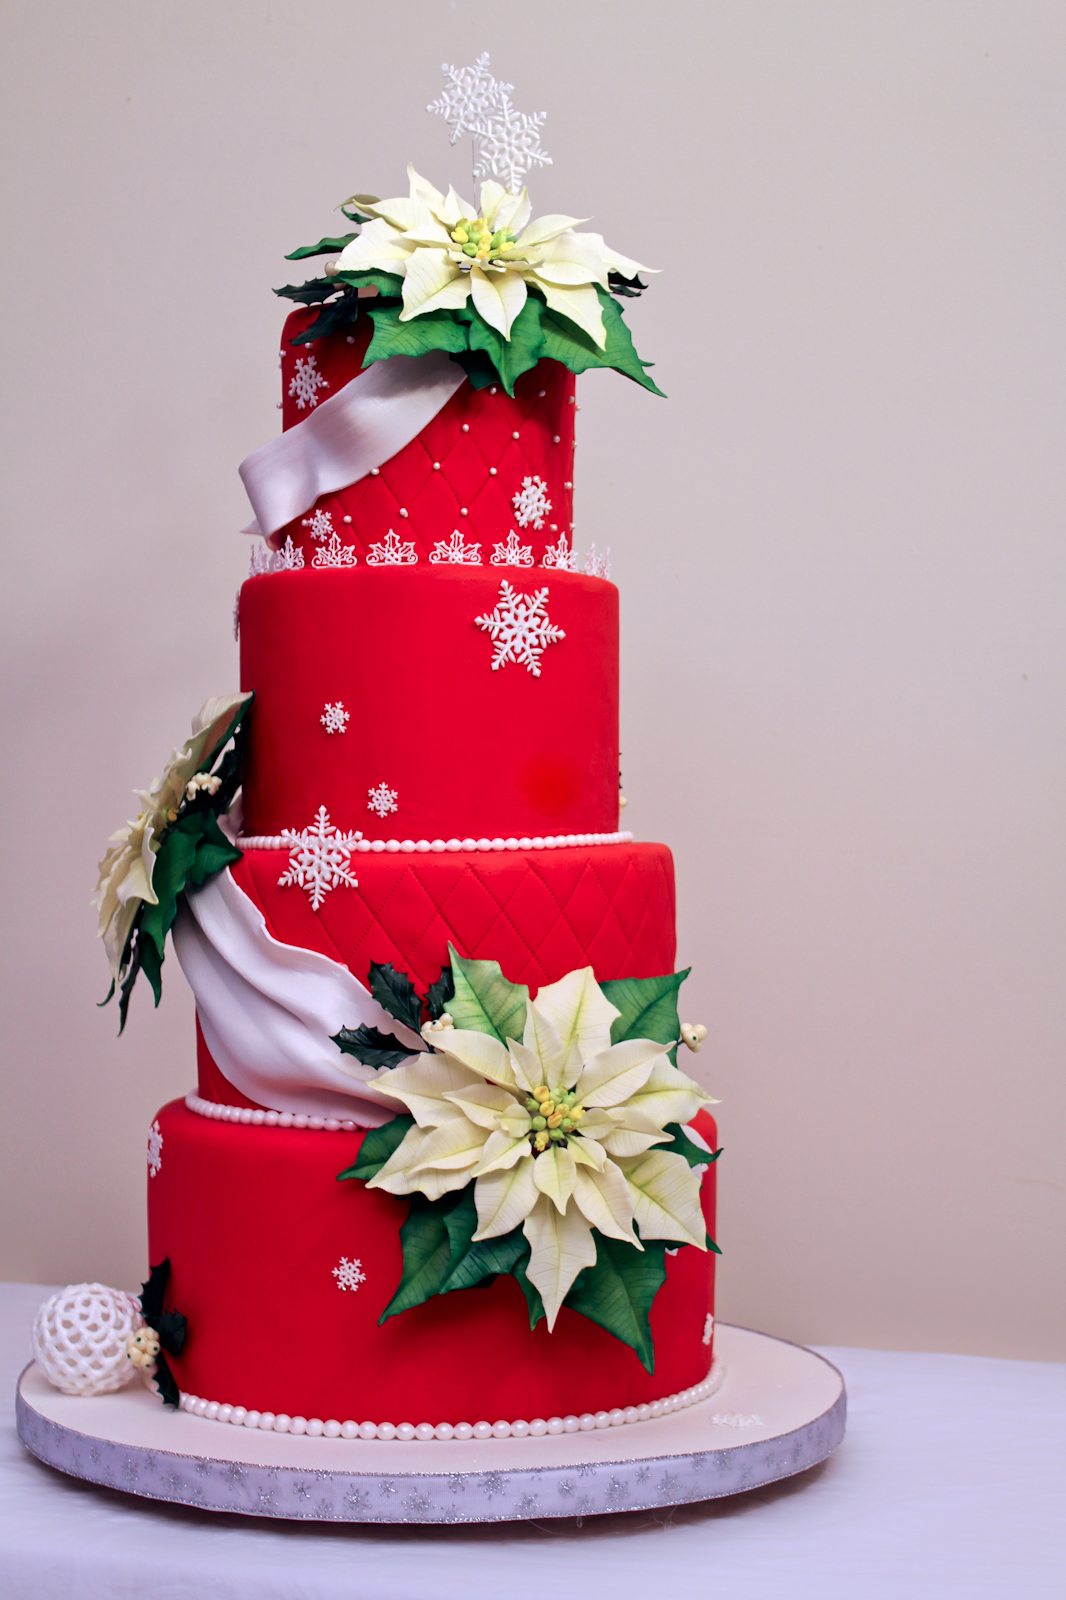 Cake Images For Christmas : The Cake Engineer: Holiday Poinsettia Cake